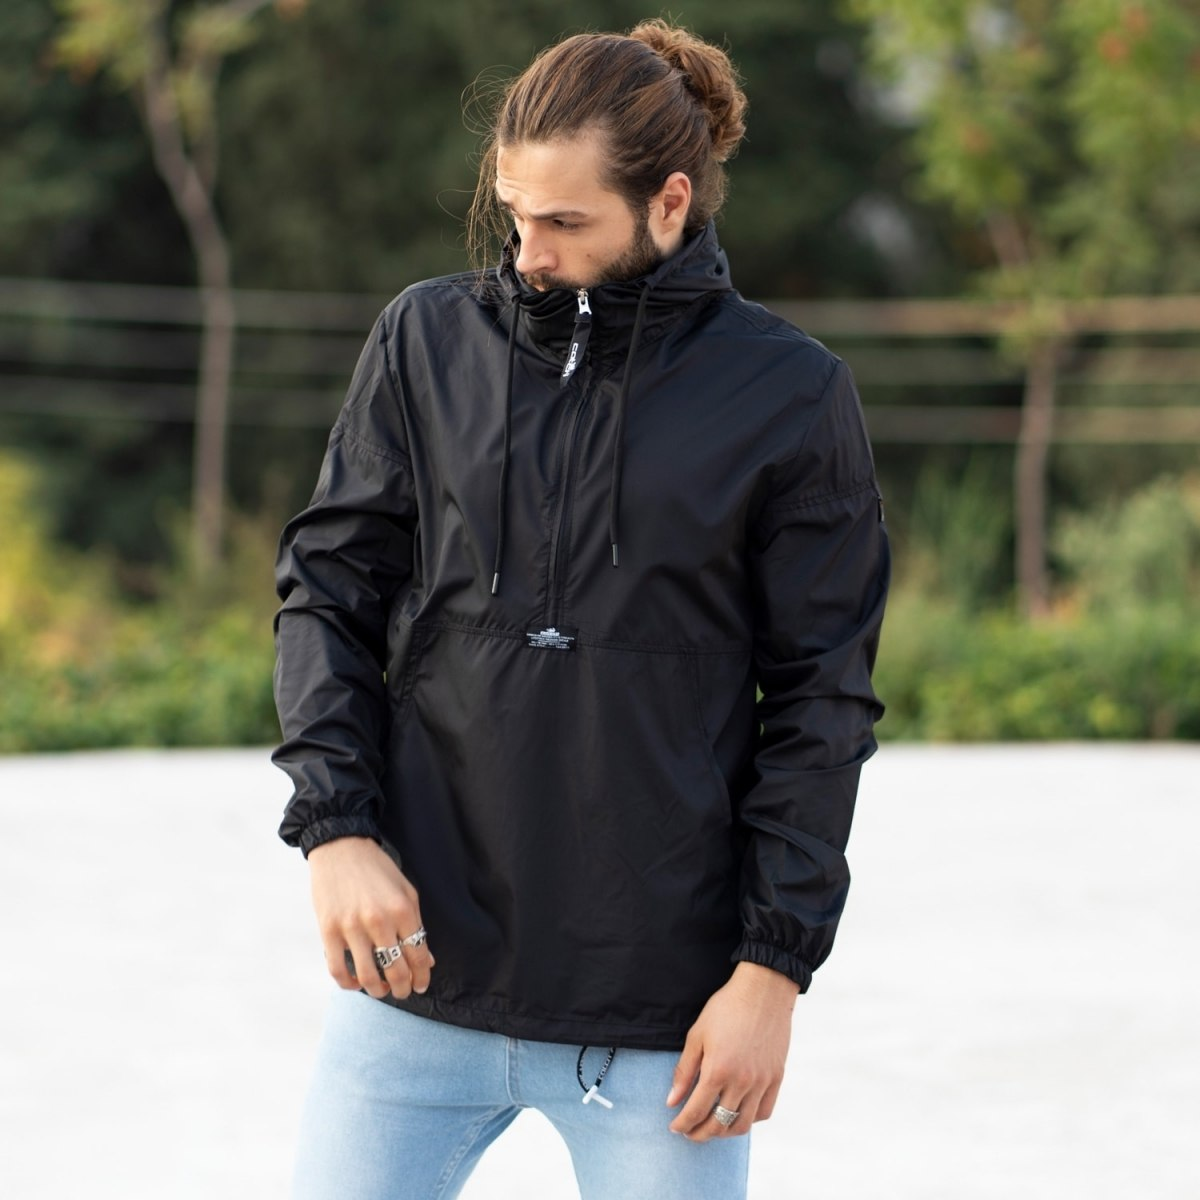 MV Autumn Collection Rainproof Hoodie in Black MV Jacket Collection - 1